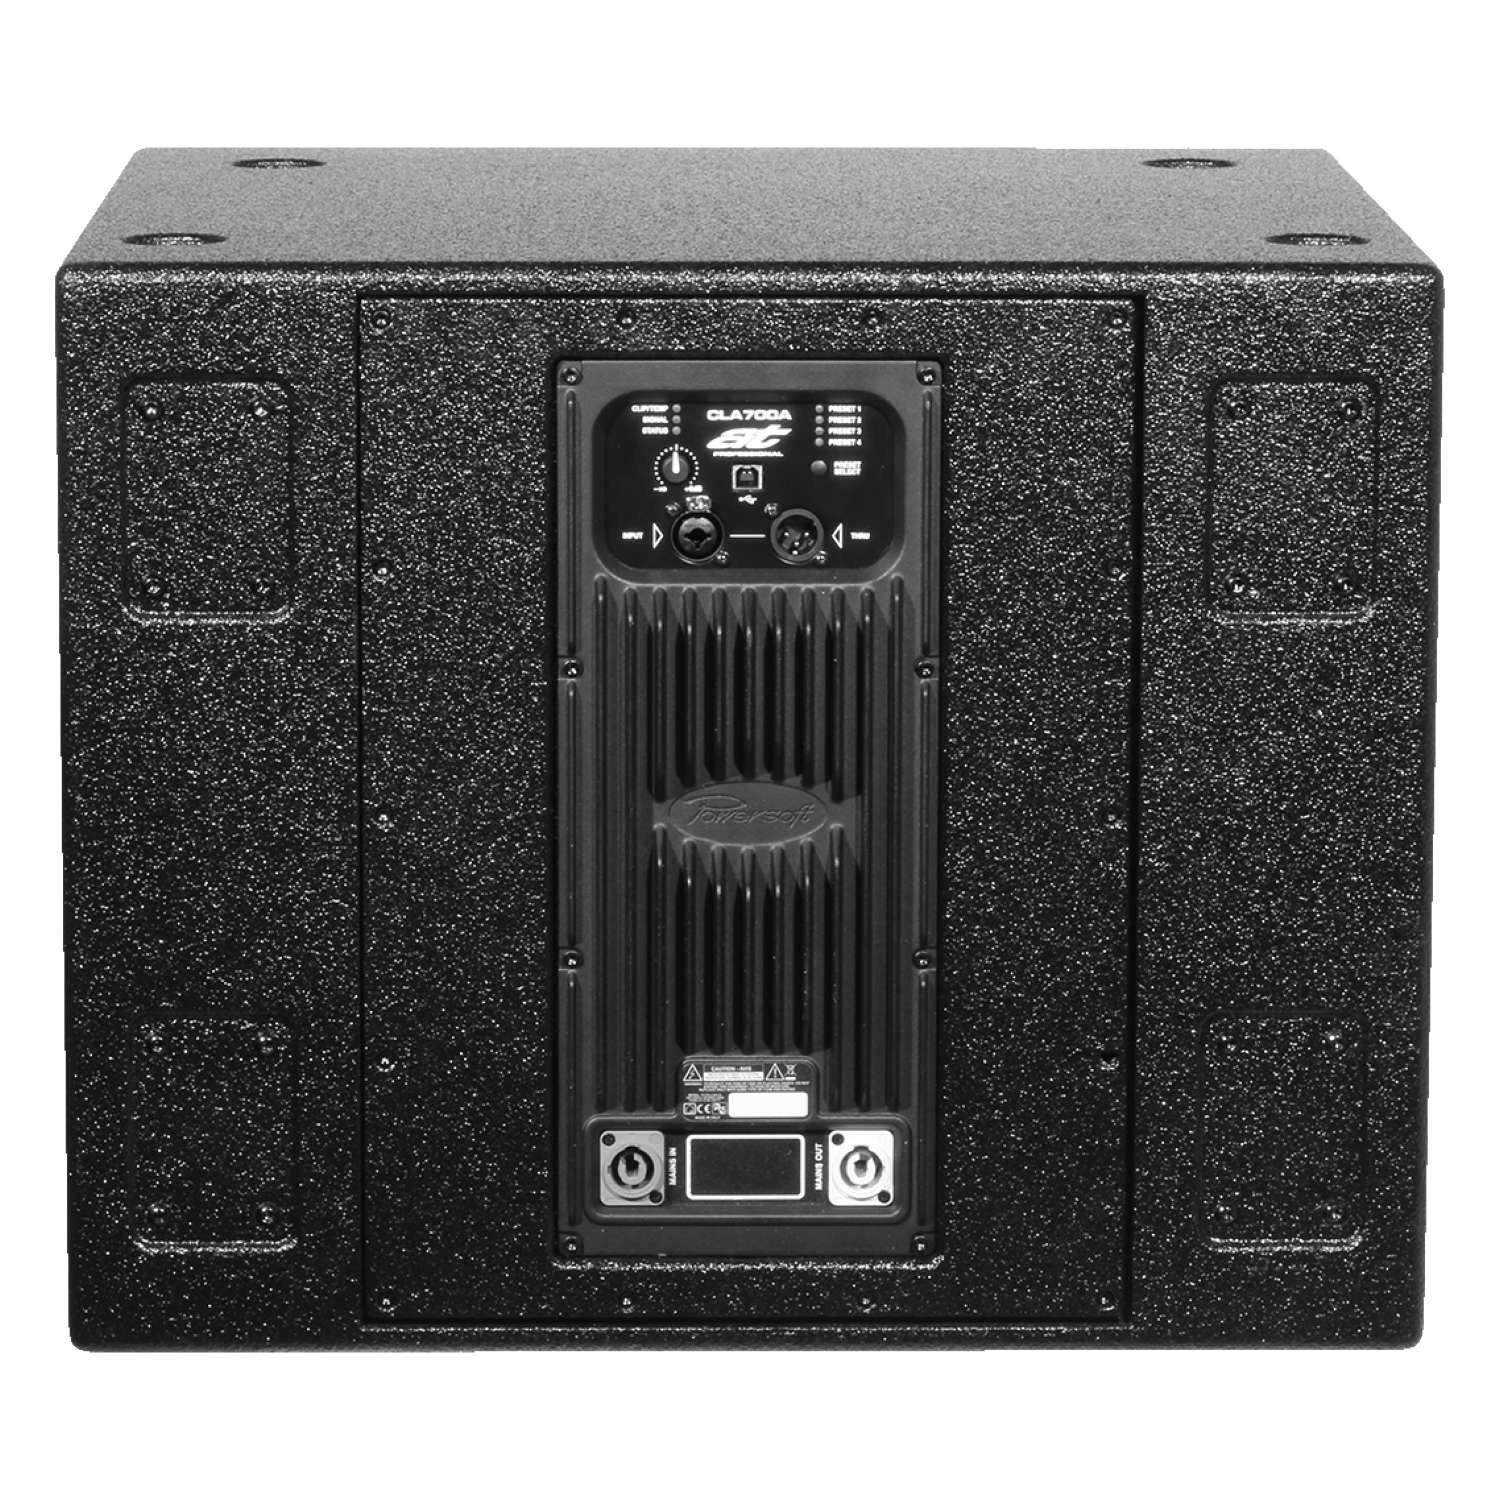 AT Professional CLA700A 3200W Composite Line Array Top 3